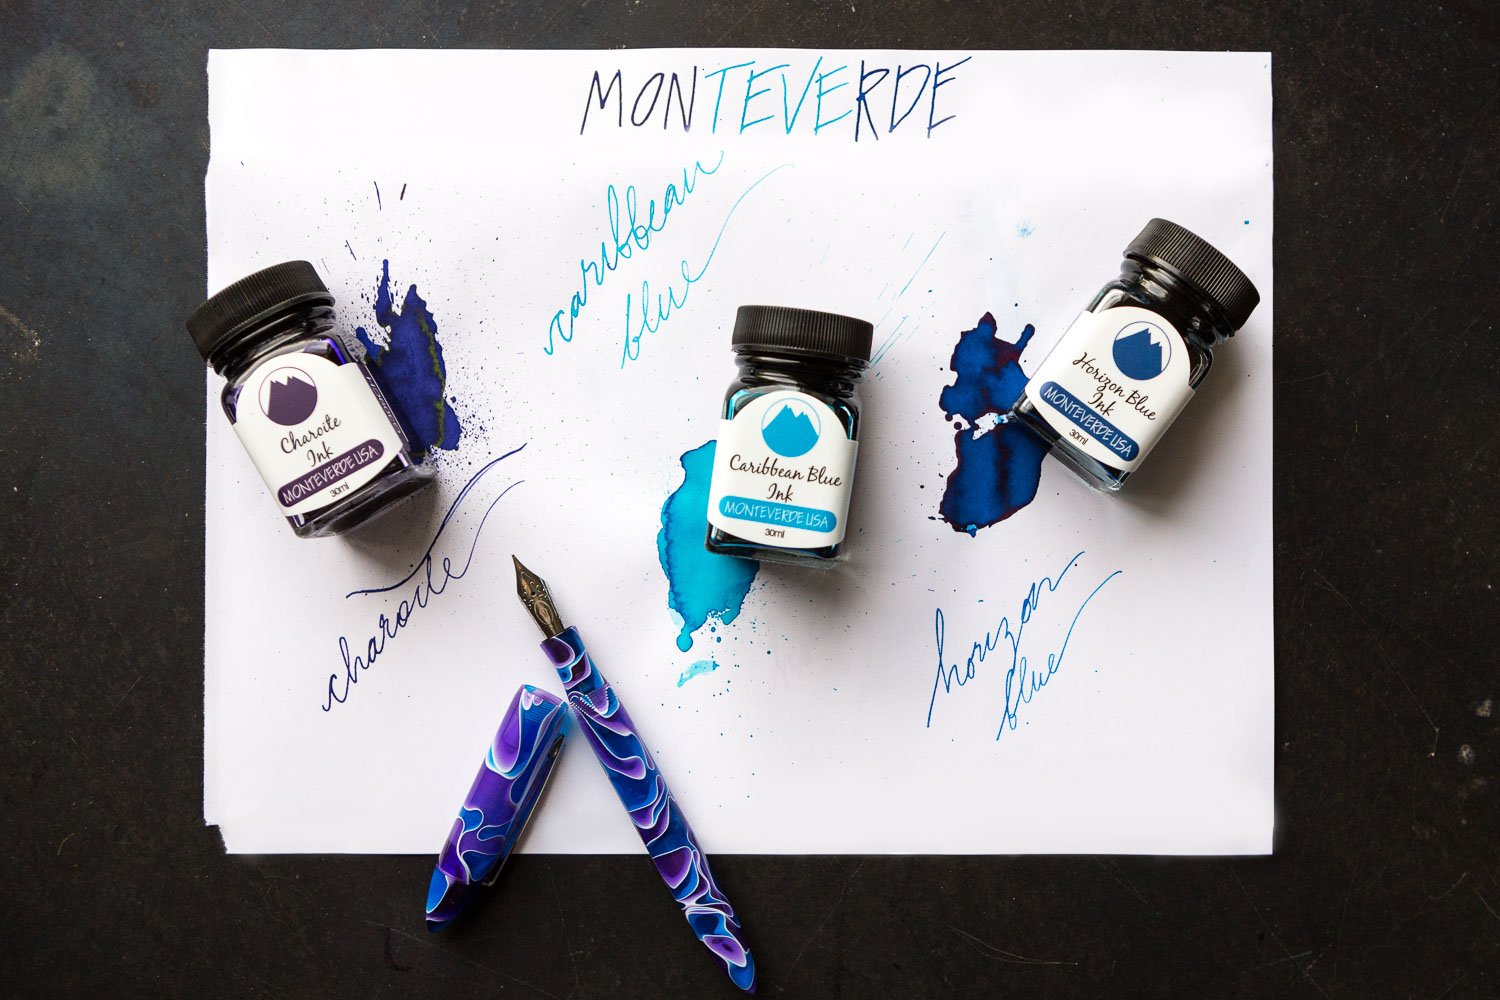 Monteverde Ink Set - Summer 2017, featuring Charoite, Horizon Blue, and Caribbean Blue.